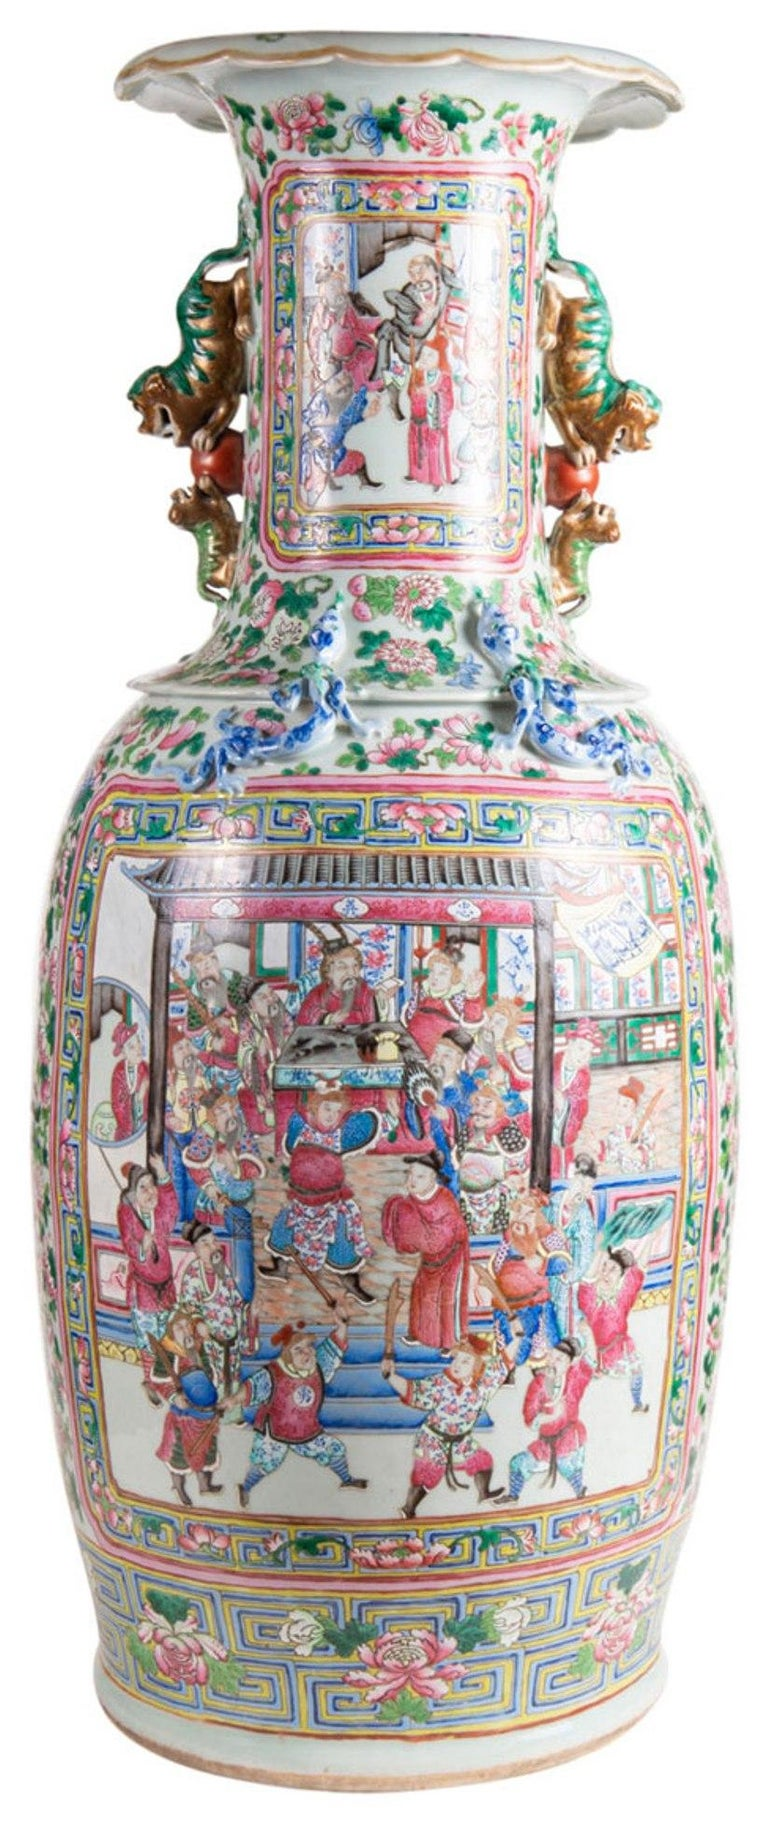 A very impressive pair of 19th century Chinese Famille Rose floor standing vases, each green and pink ground with exotic birds and flowers. Inset painted panels depicting courtiers, scholars, musicians and warriors. Measures: 89cm (35